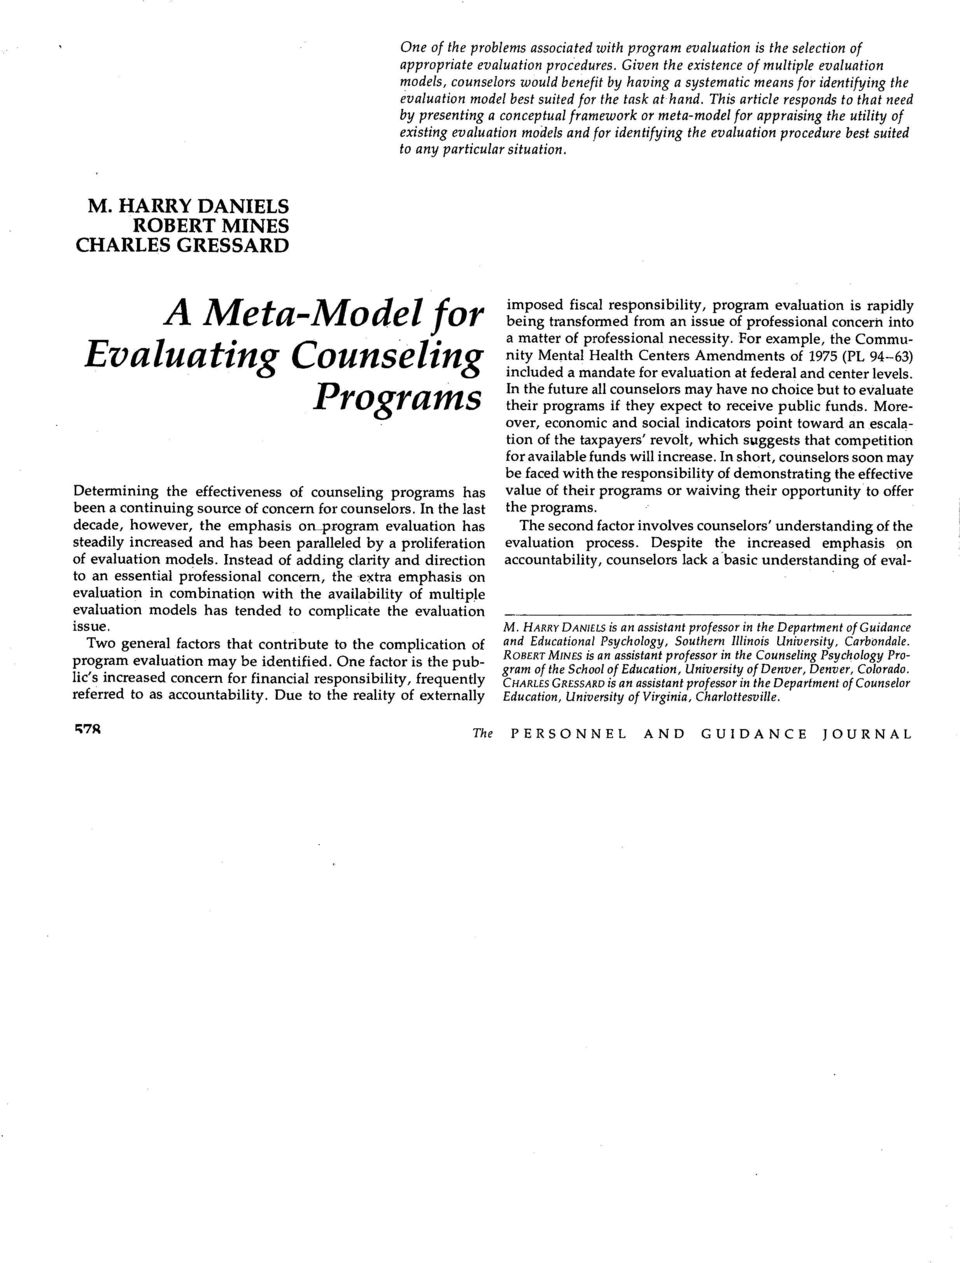 This article responds to that need by presenting a conceptual framework or meta-model for appraising the utility of existing evaluation models and for identifying the evaluation procedure best suited